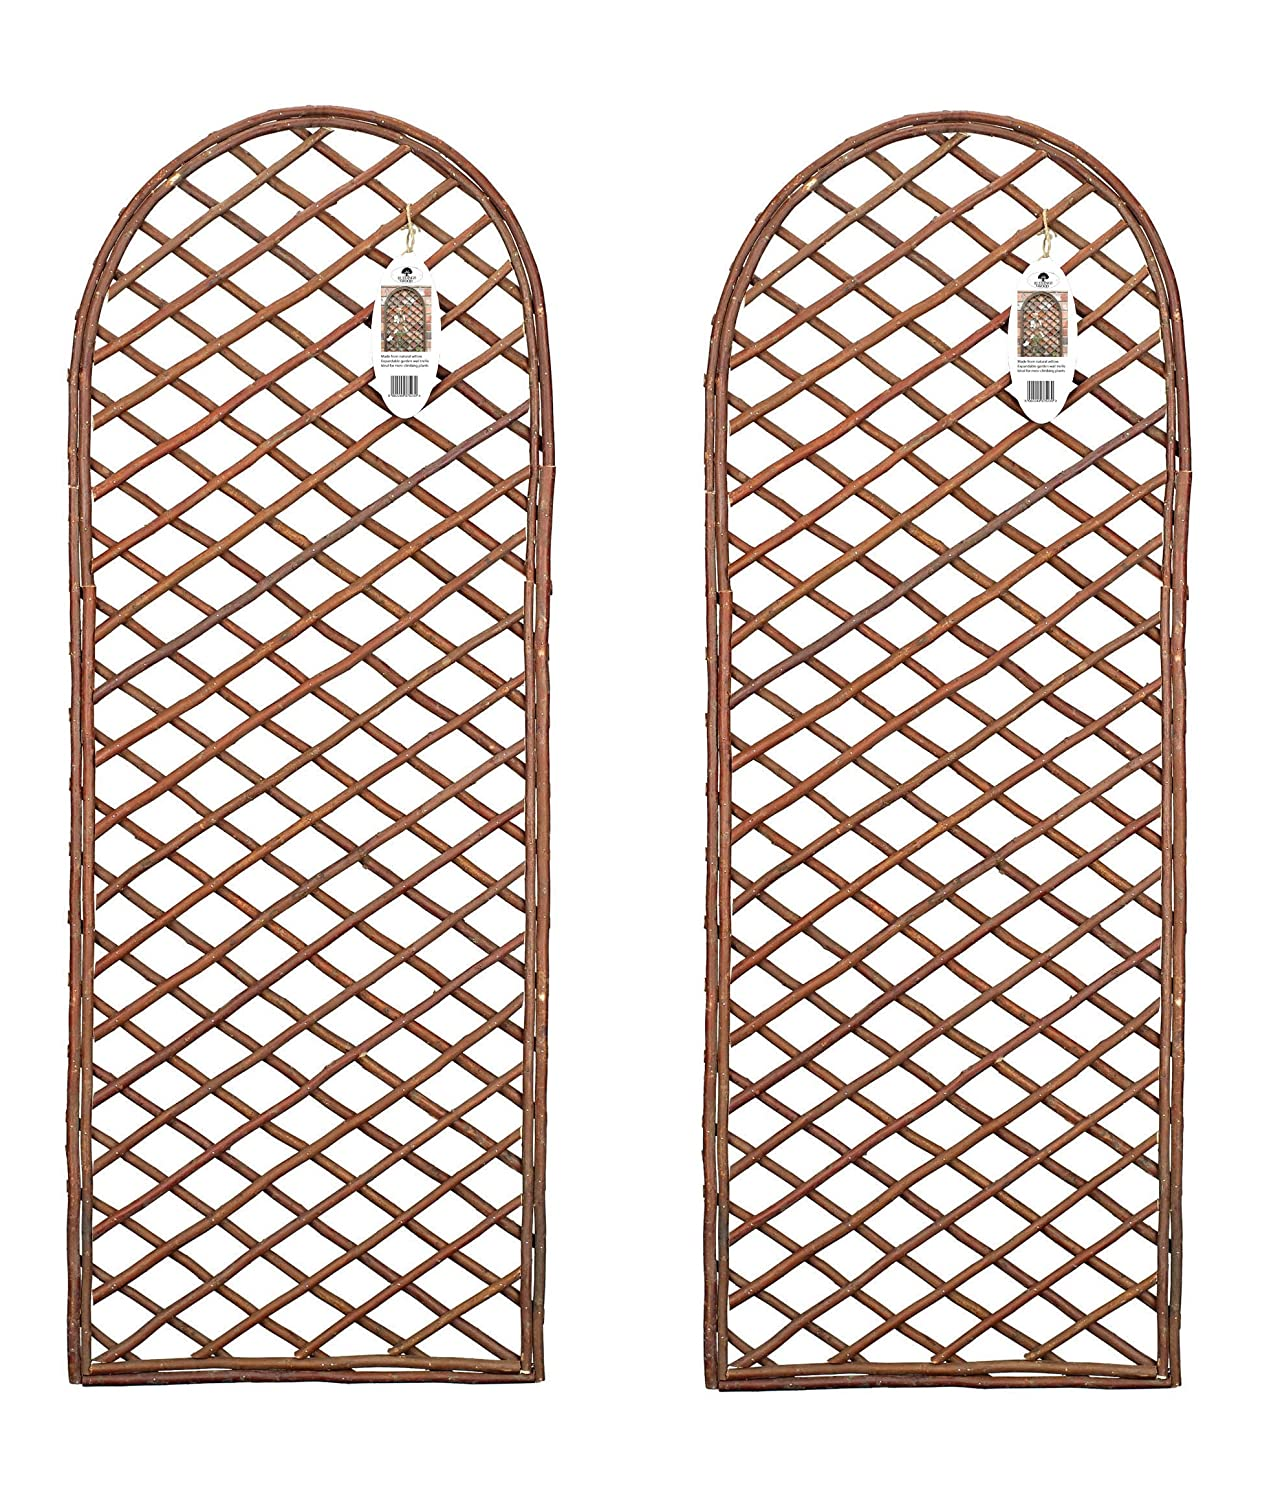 Pack of 2 x Willow Trellis Panel Round Top - Curved Garden Wall Trellis Ruddings Wood